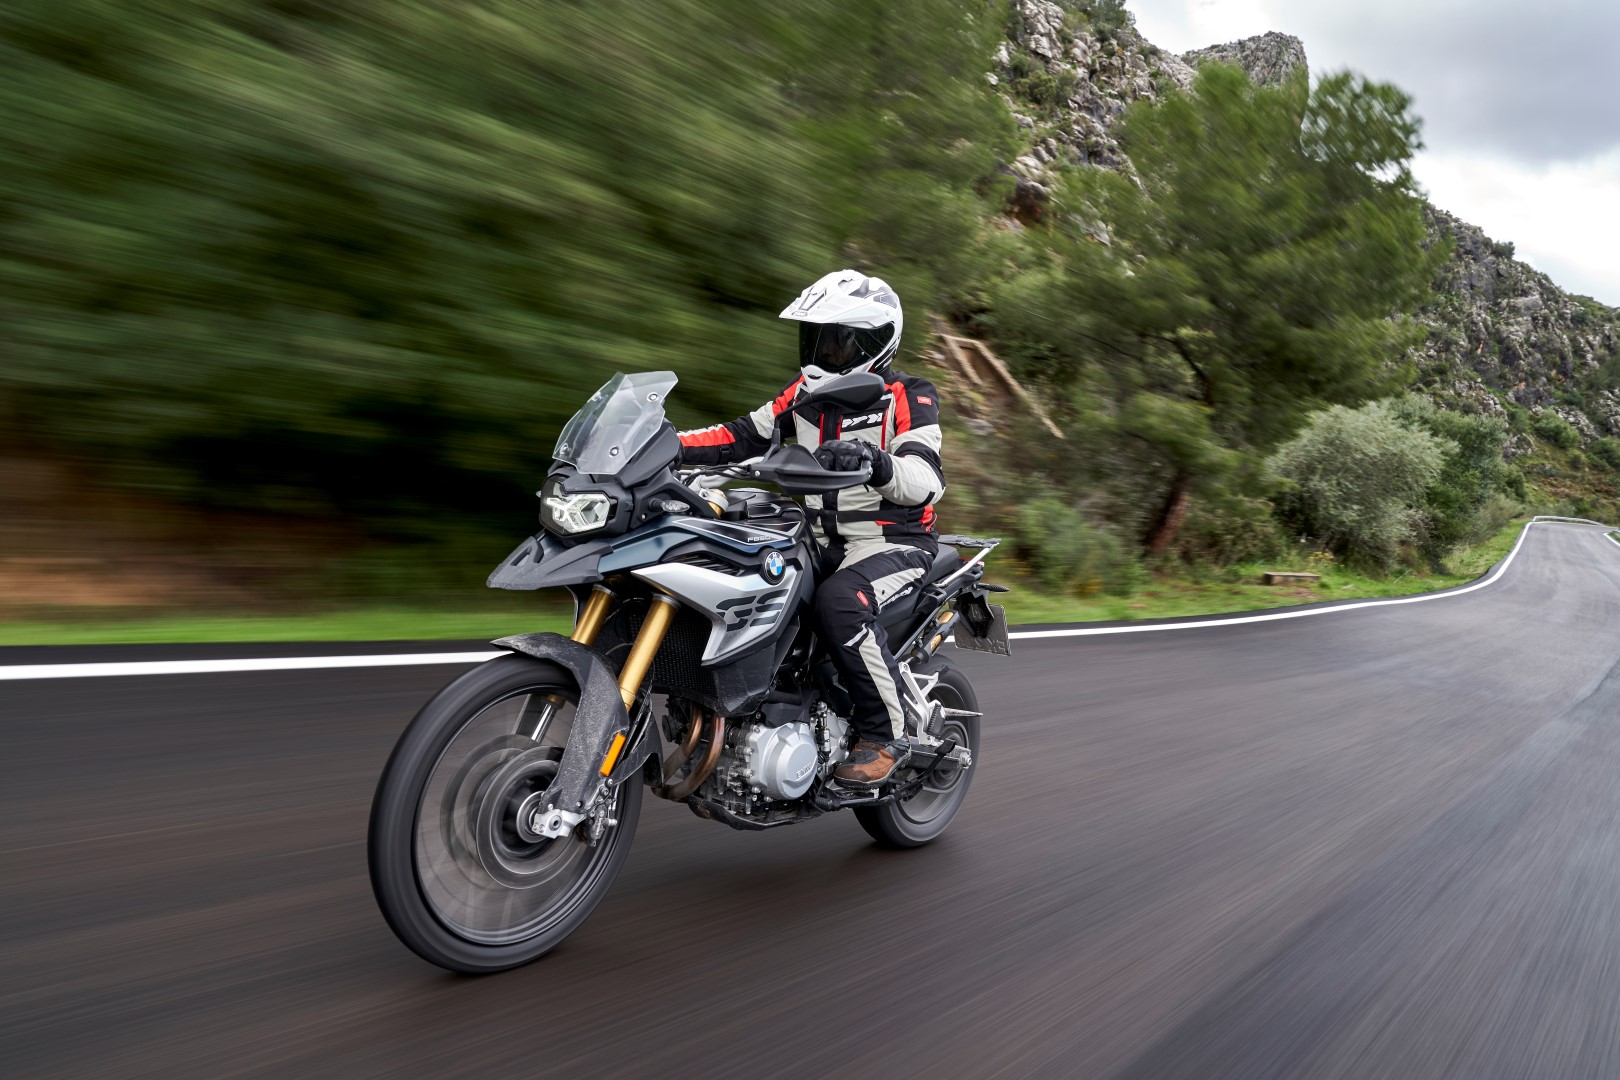 BMW F 850 GS. Fotos